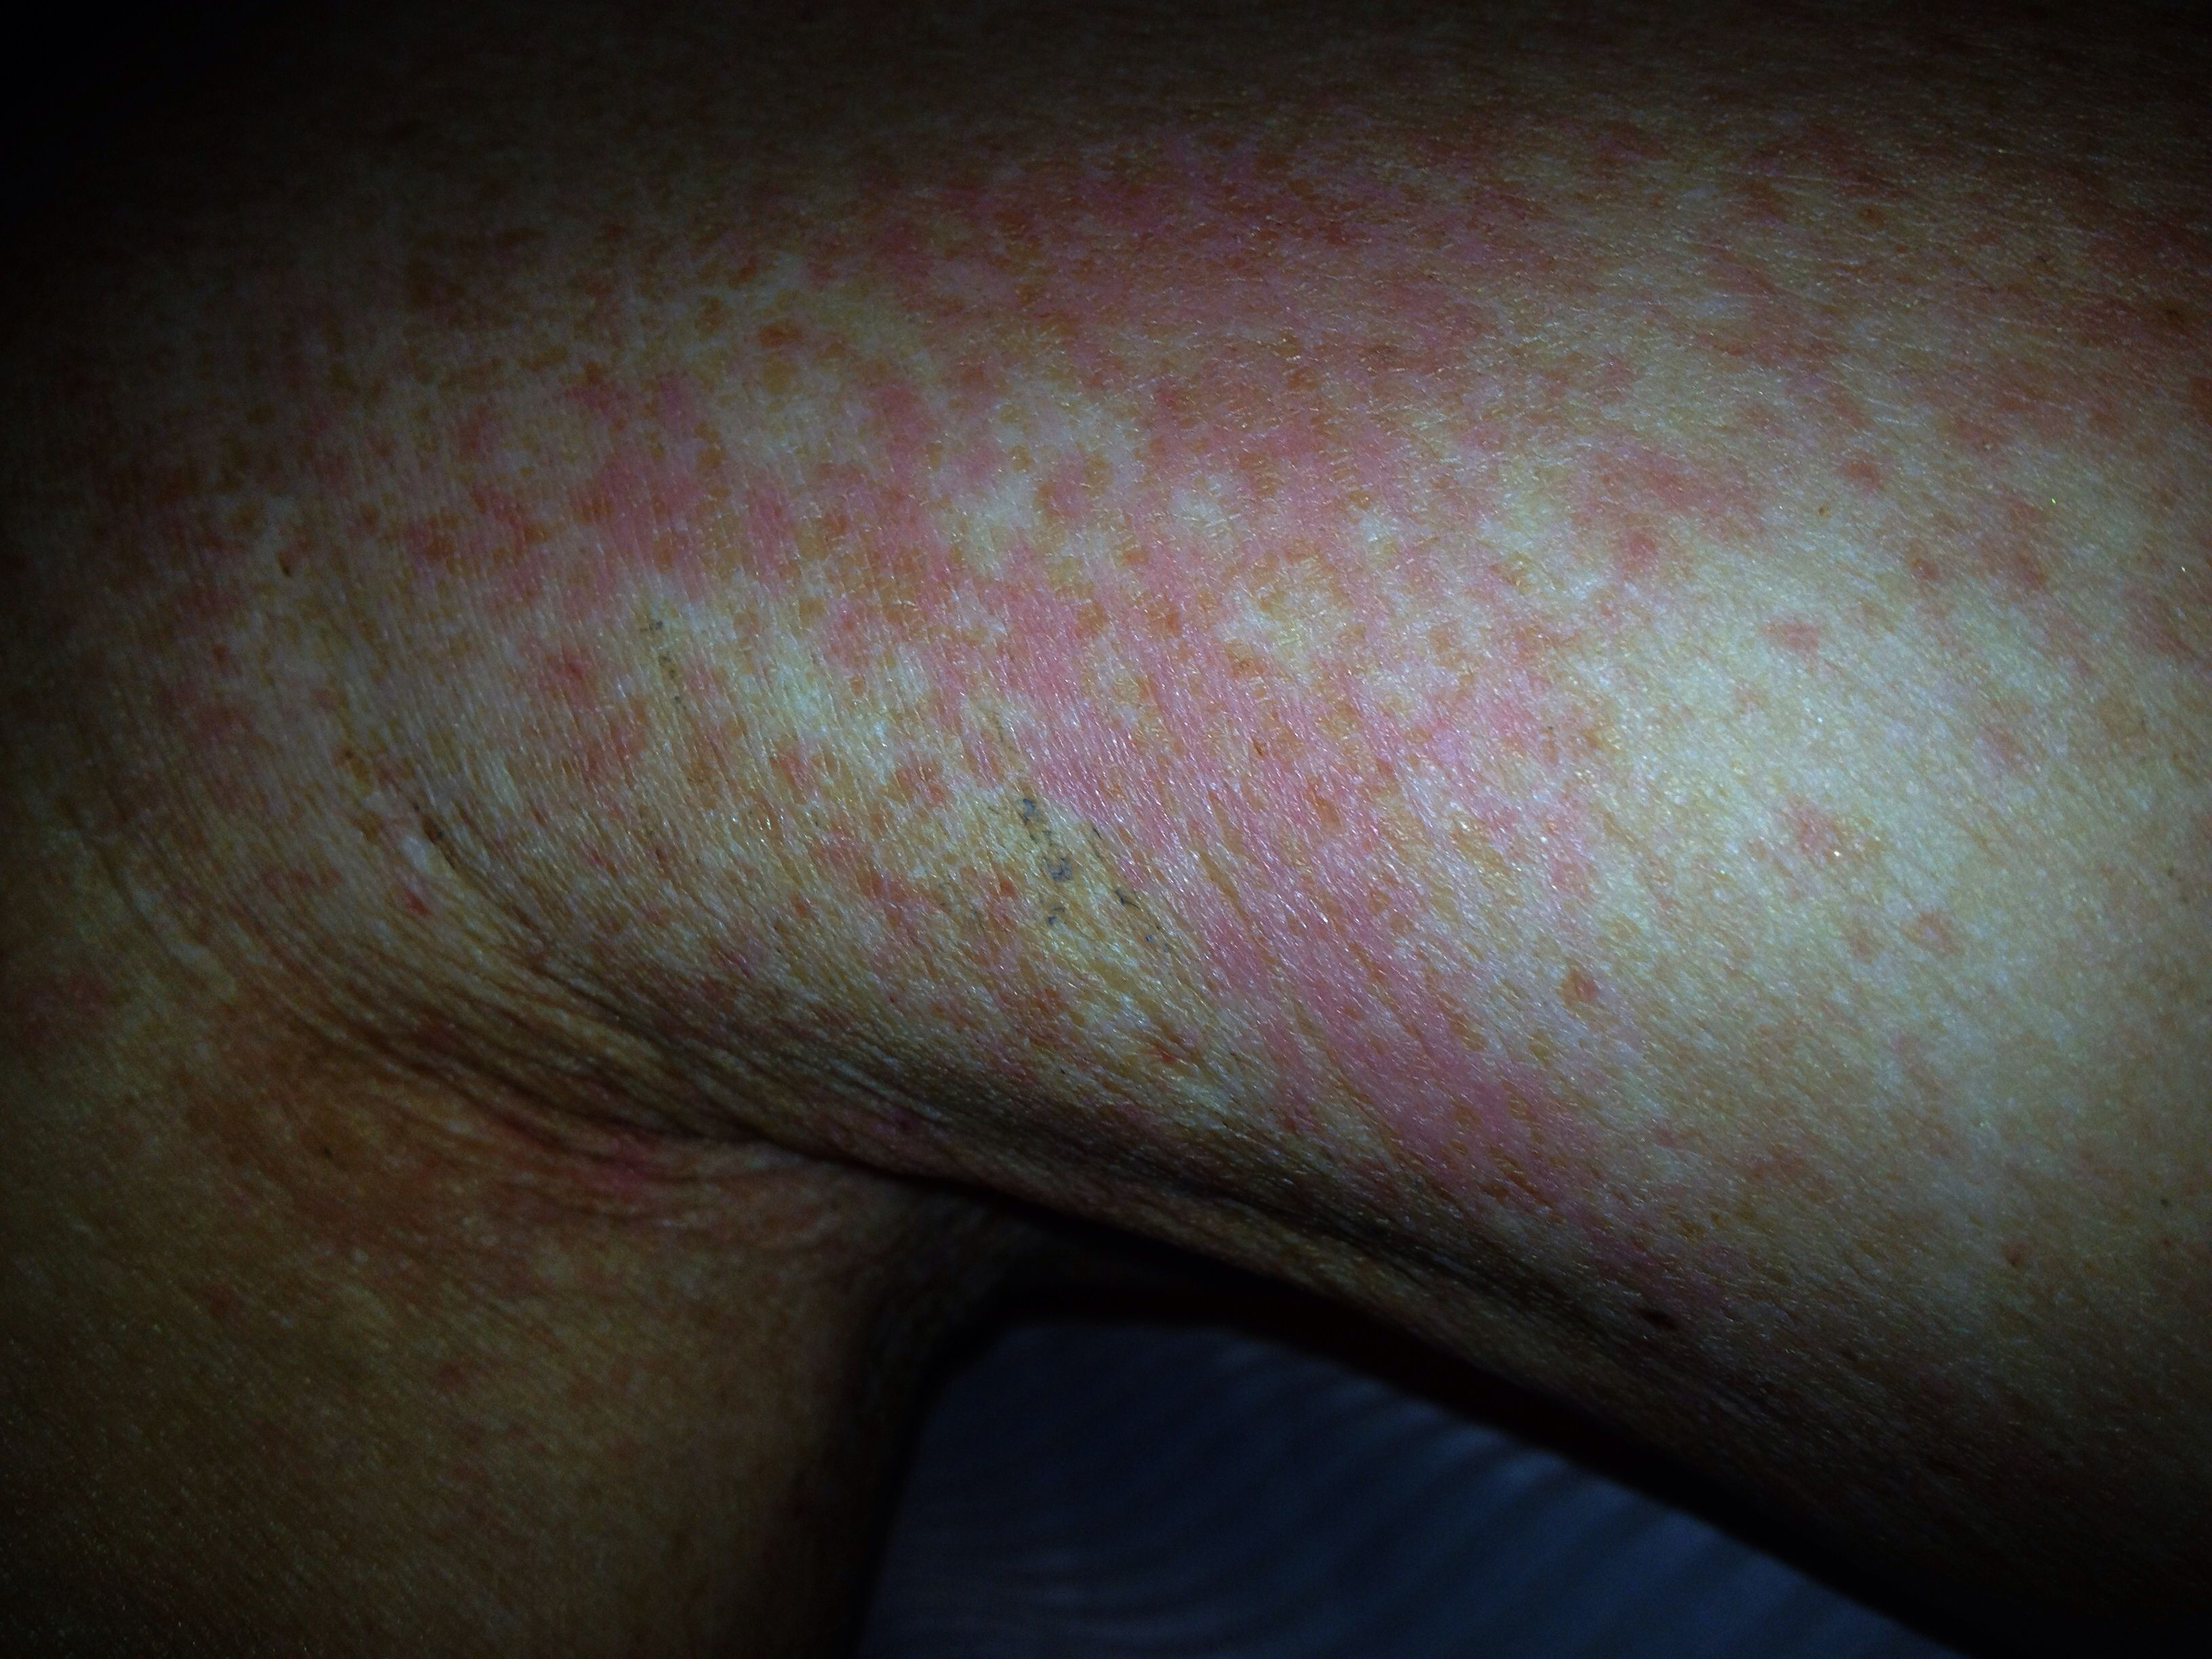 Scabies Rash Information and Guide - Healthy-Skin-Guide.com